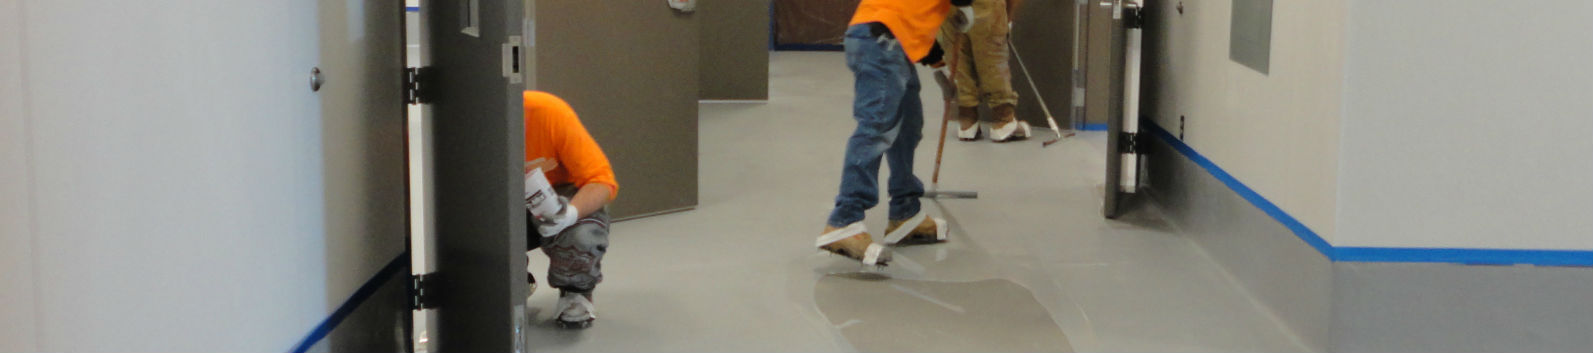 Manufacturing & Warehouse Flooring Systems